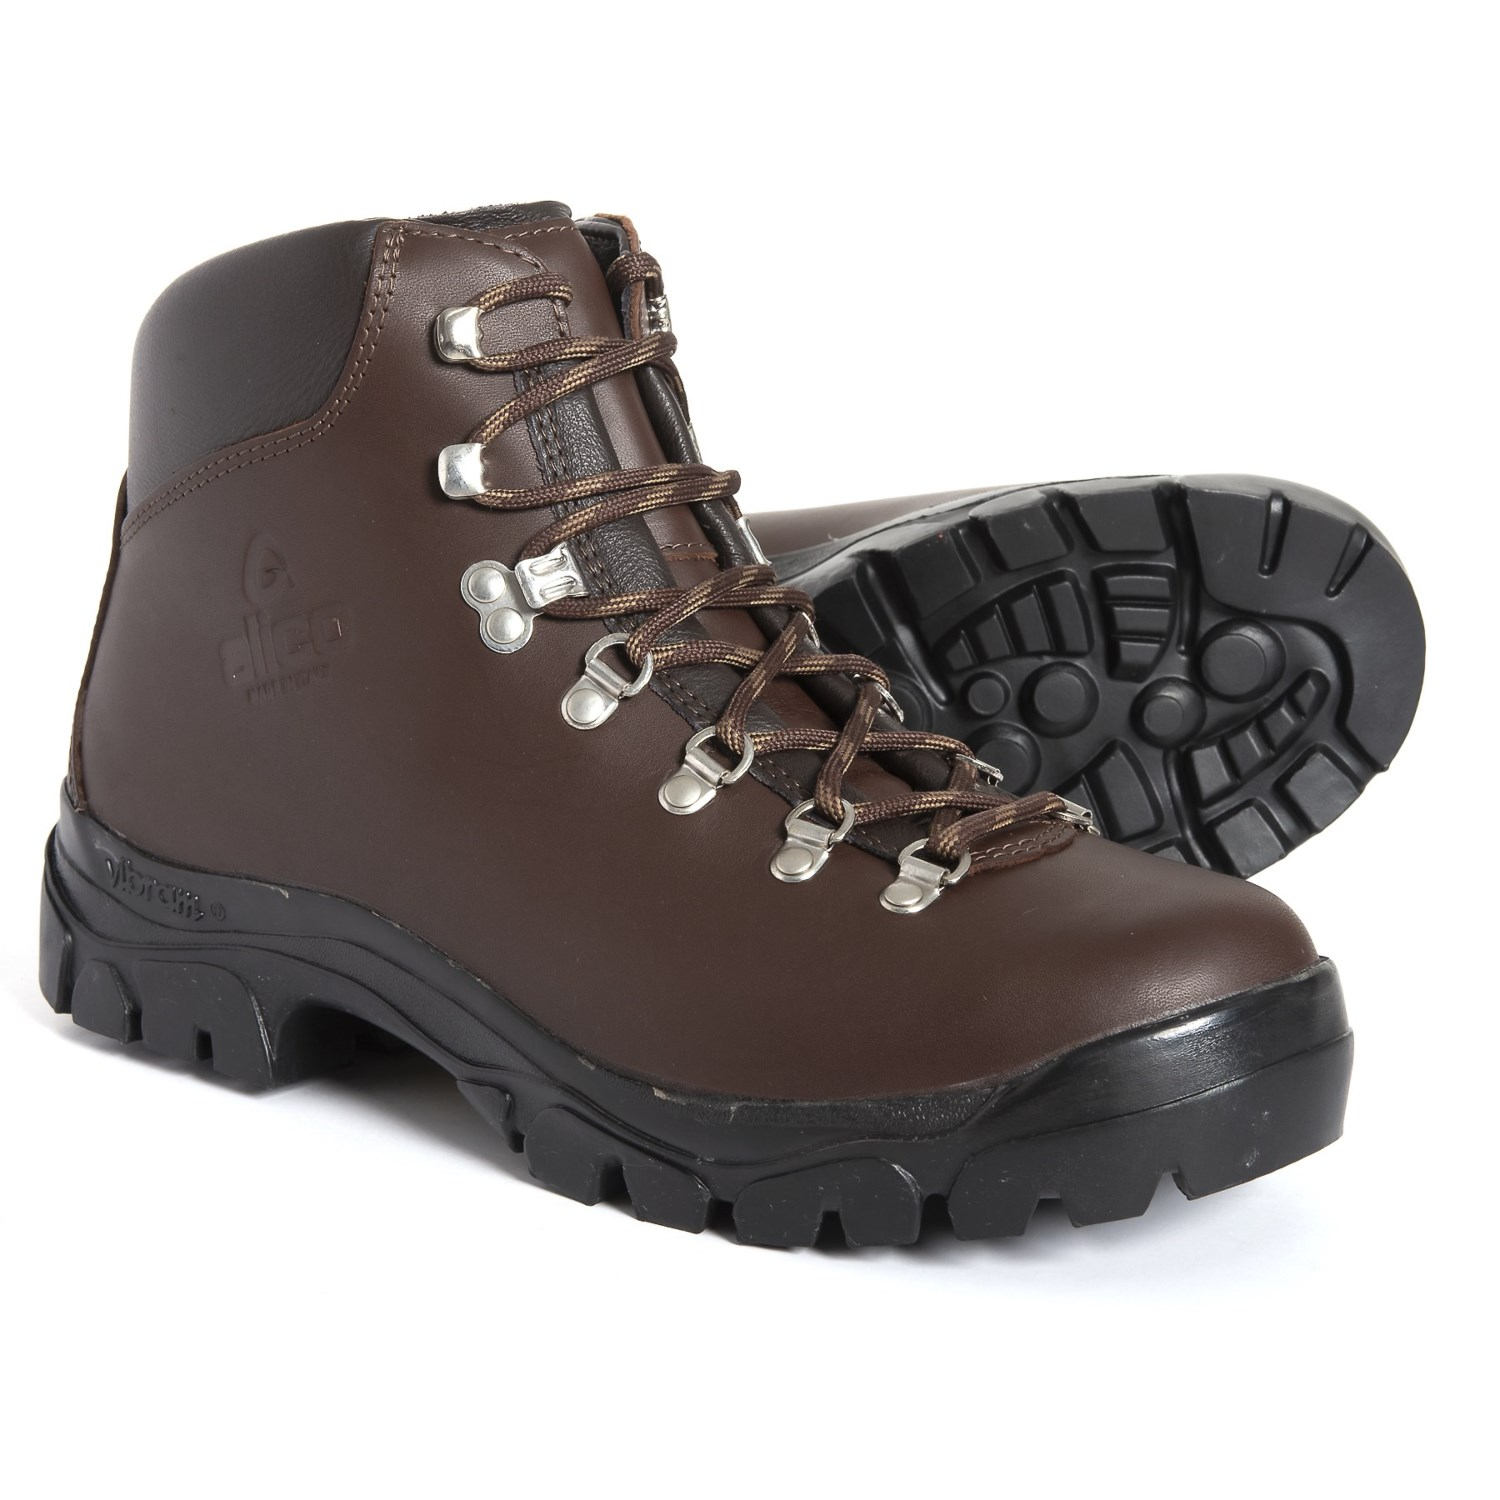 2f41ee78a59 Alico Made In Italy Peak Hiking Boots (For Men)